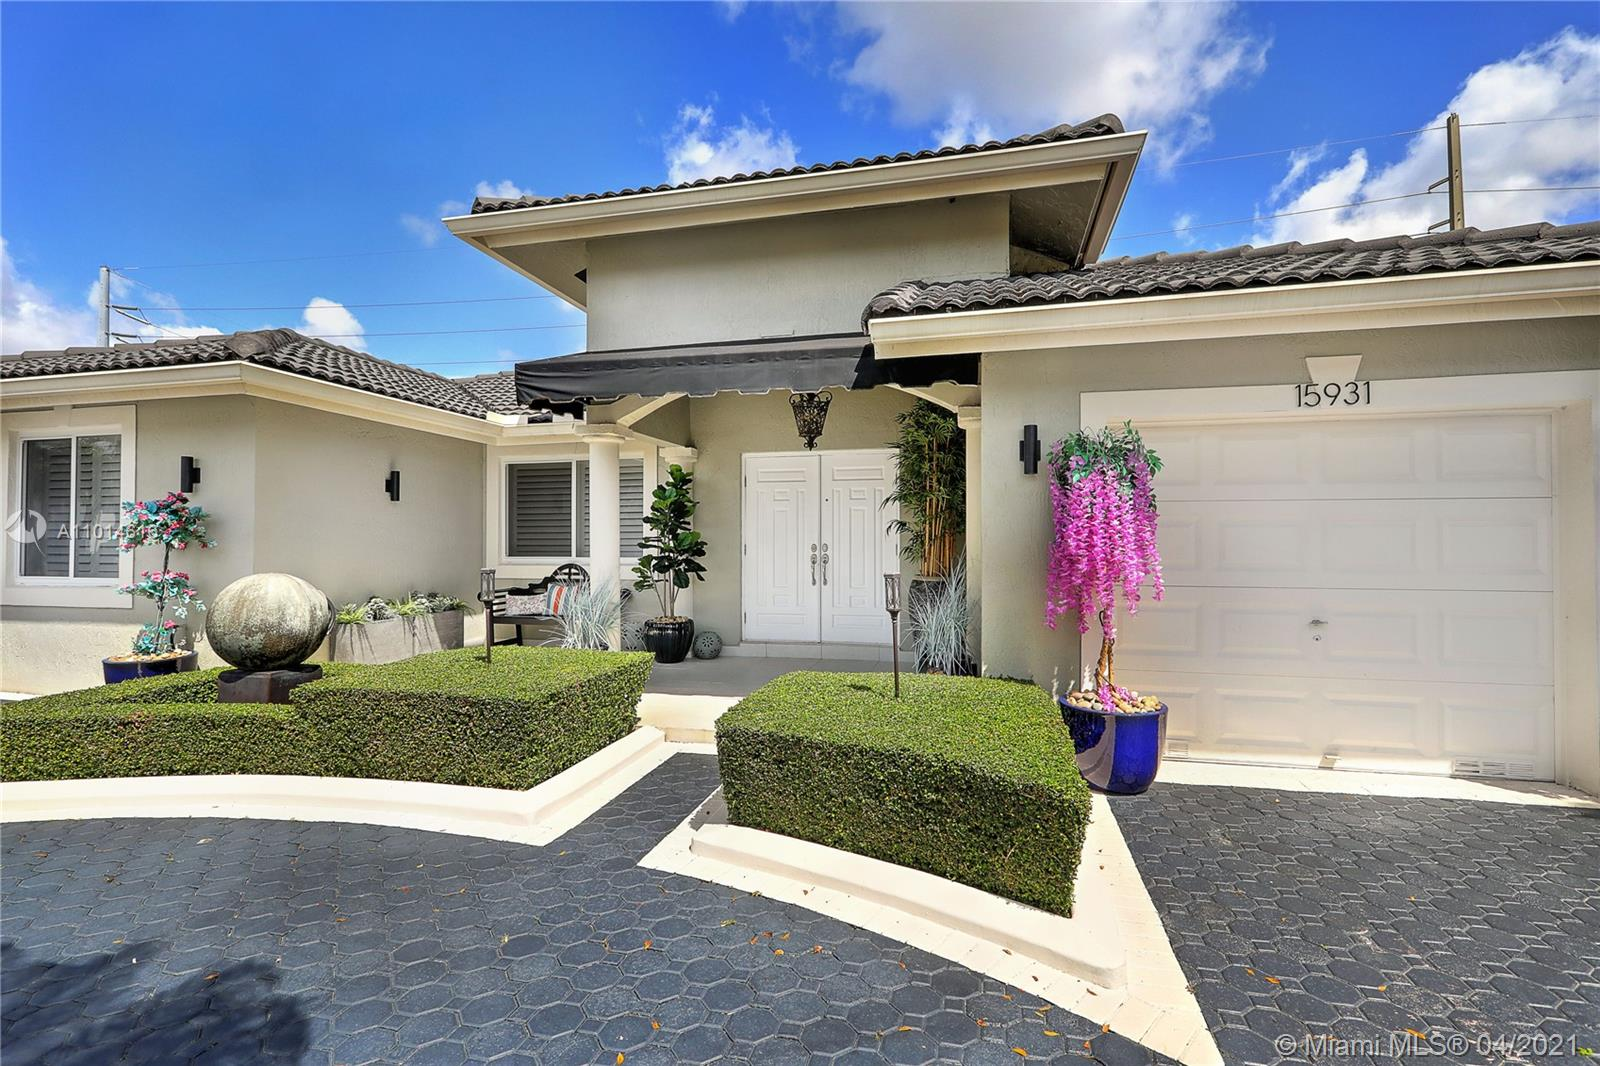 Details for 15931 42nd Ter, Miami, FL 33185